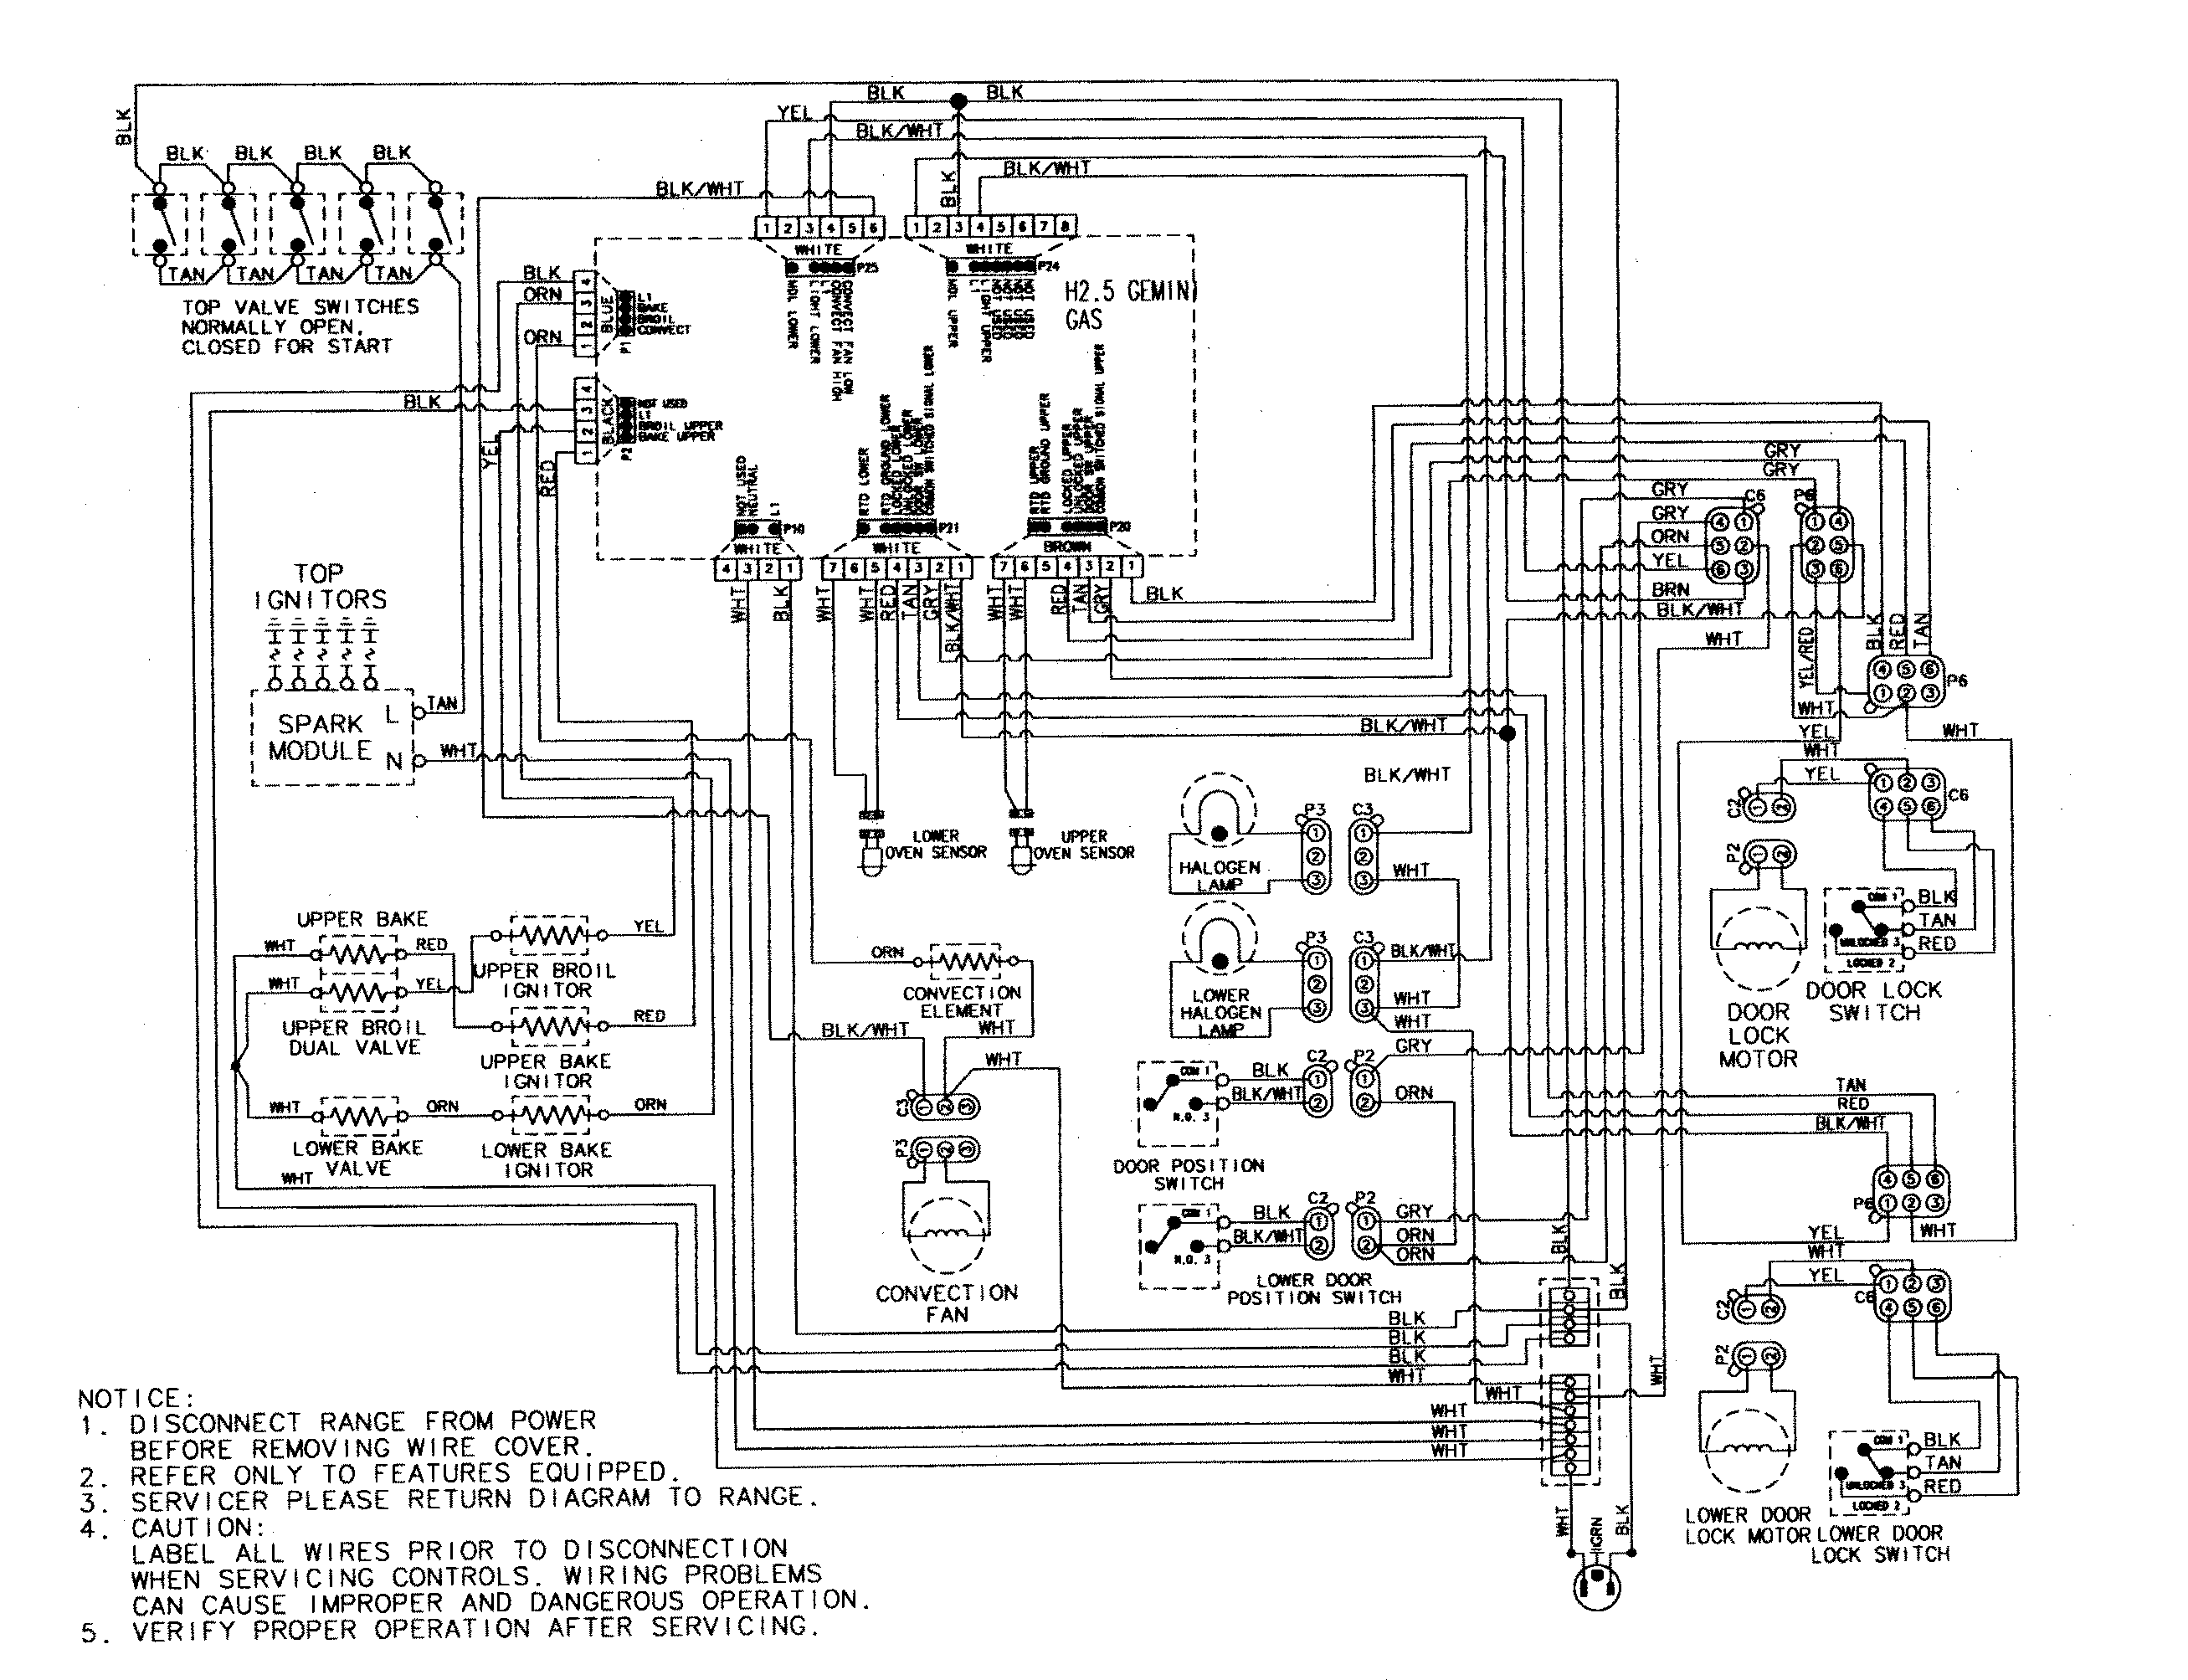 Maytag Double Oven Wiring Diagram Whirlpool Gemini Will Be A Rh Thelondonartist Co Schematic Gas Range